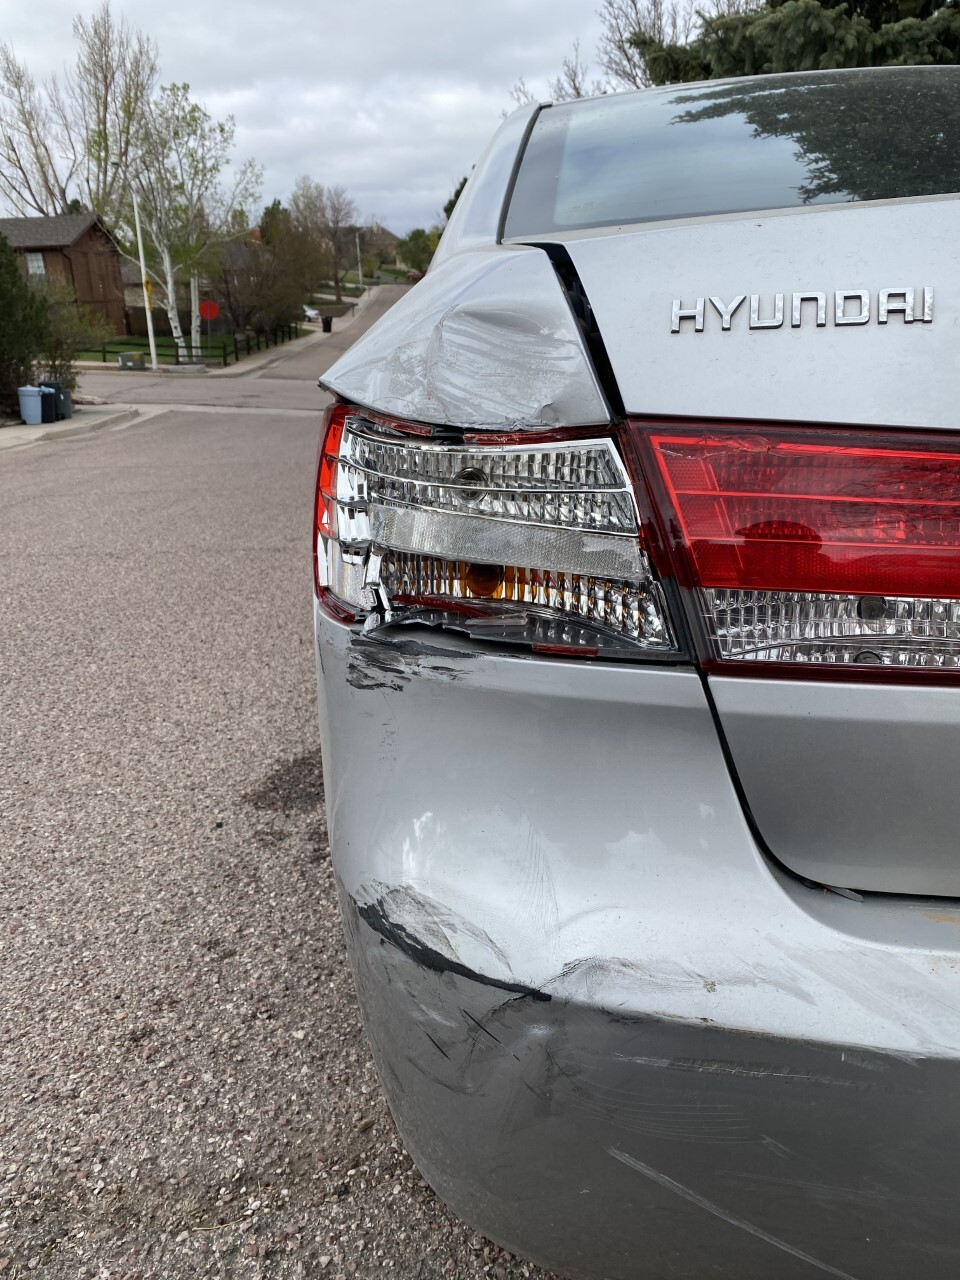 Damage to first vehicle